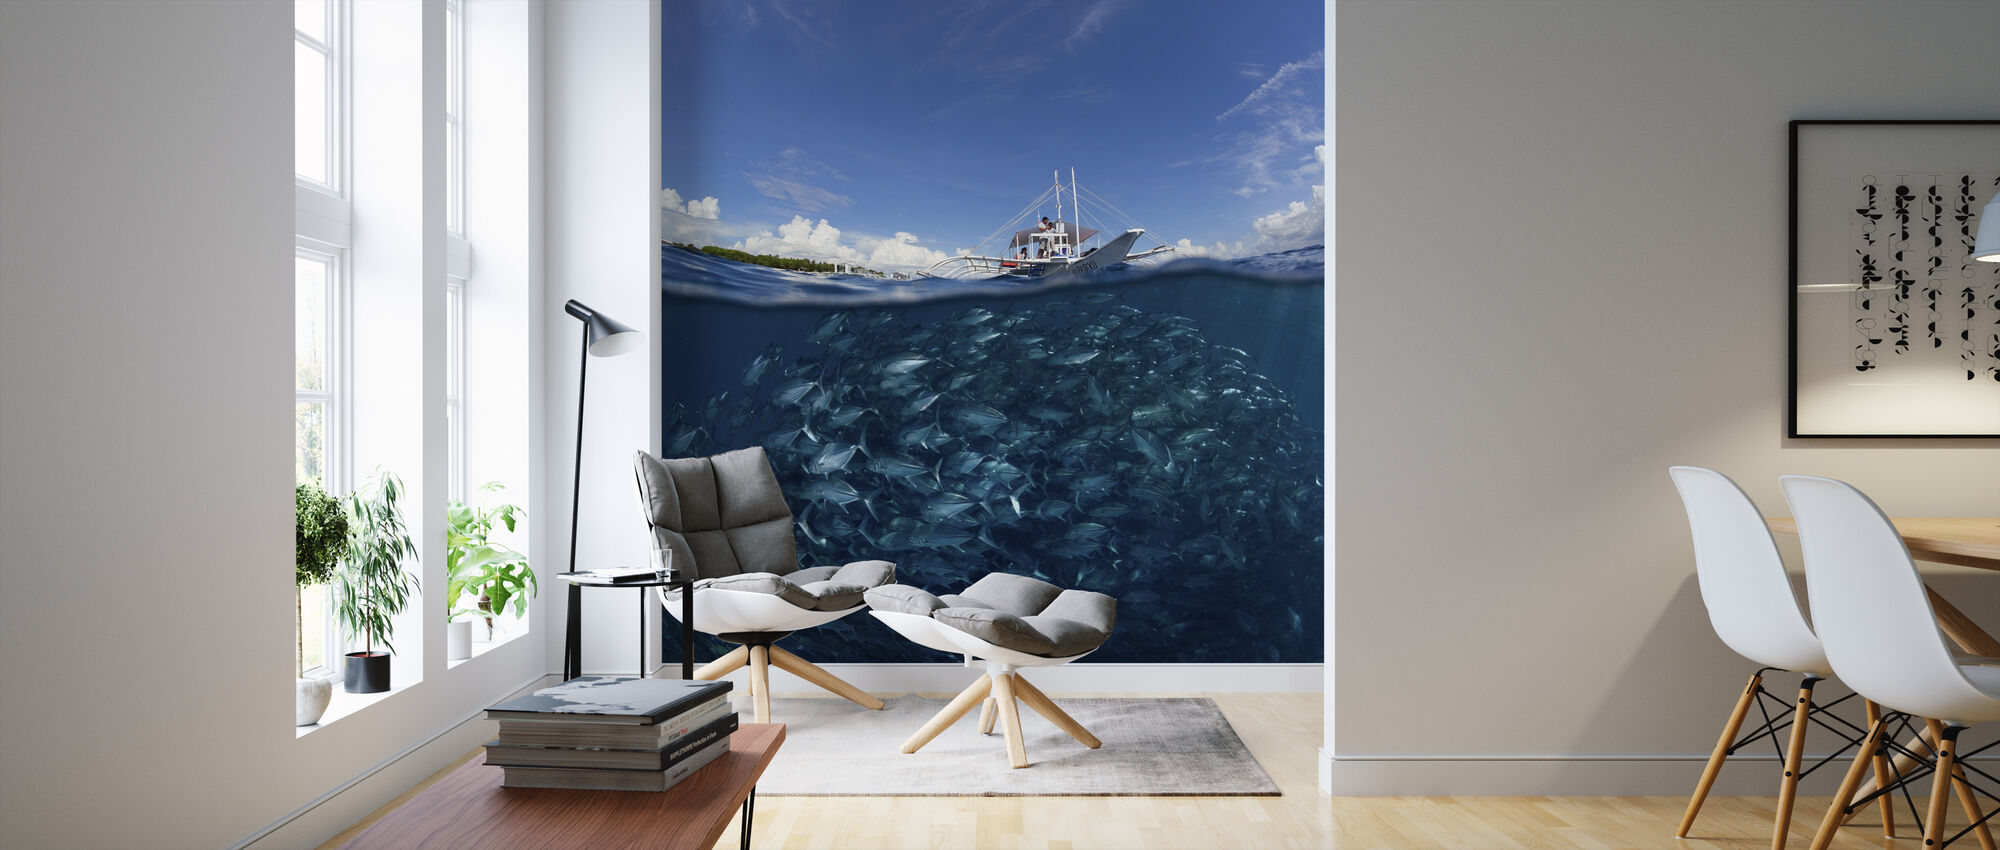 Go Diving - Wallpaper - Living Room